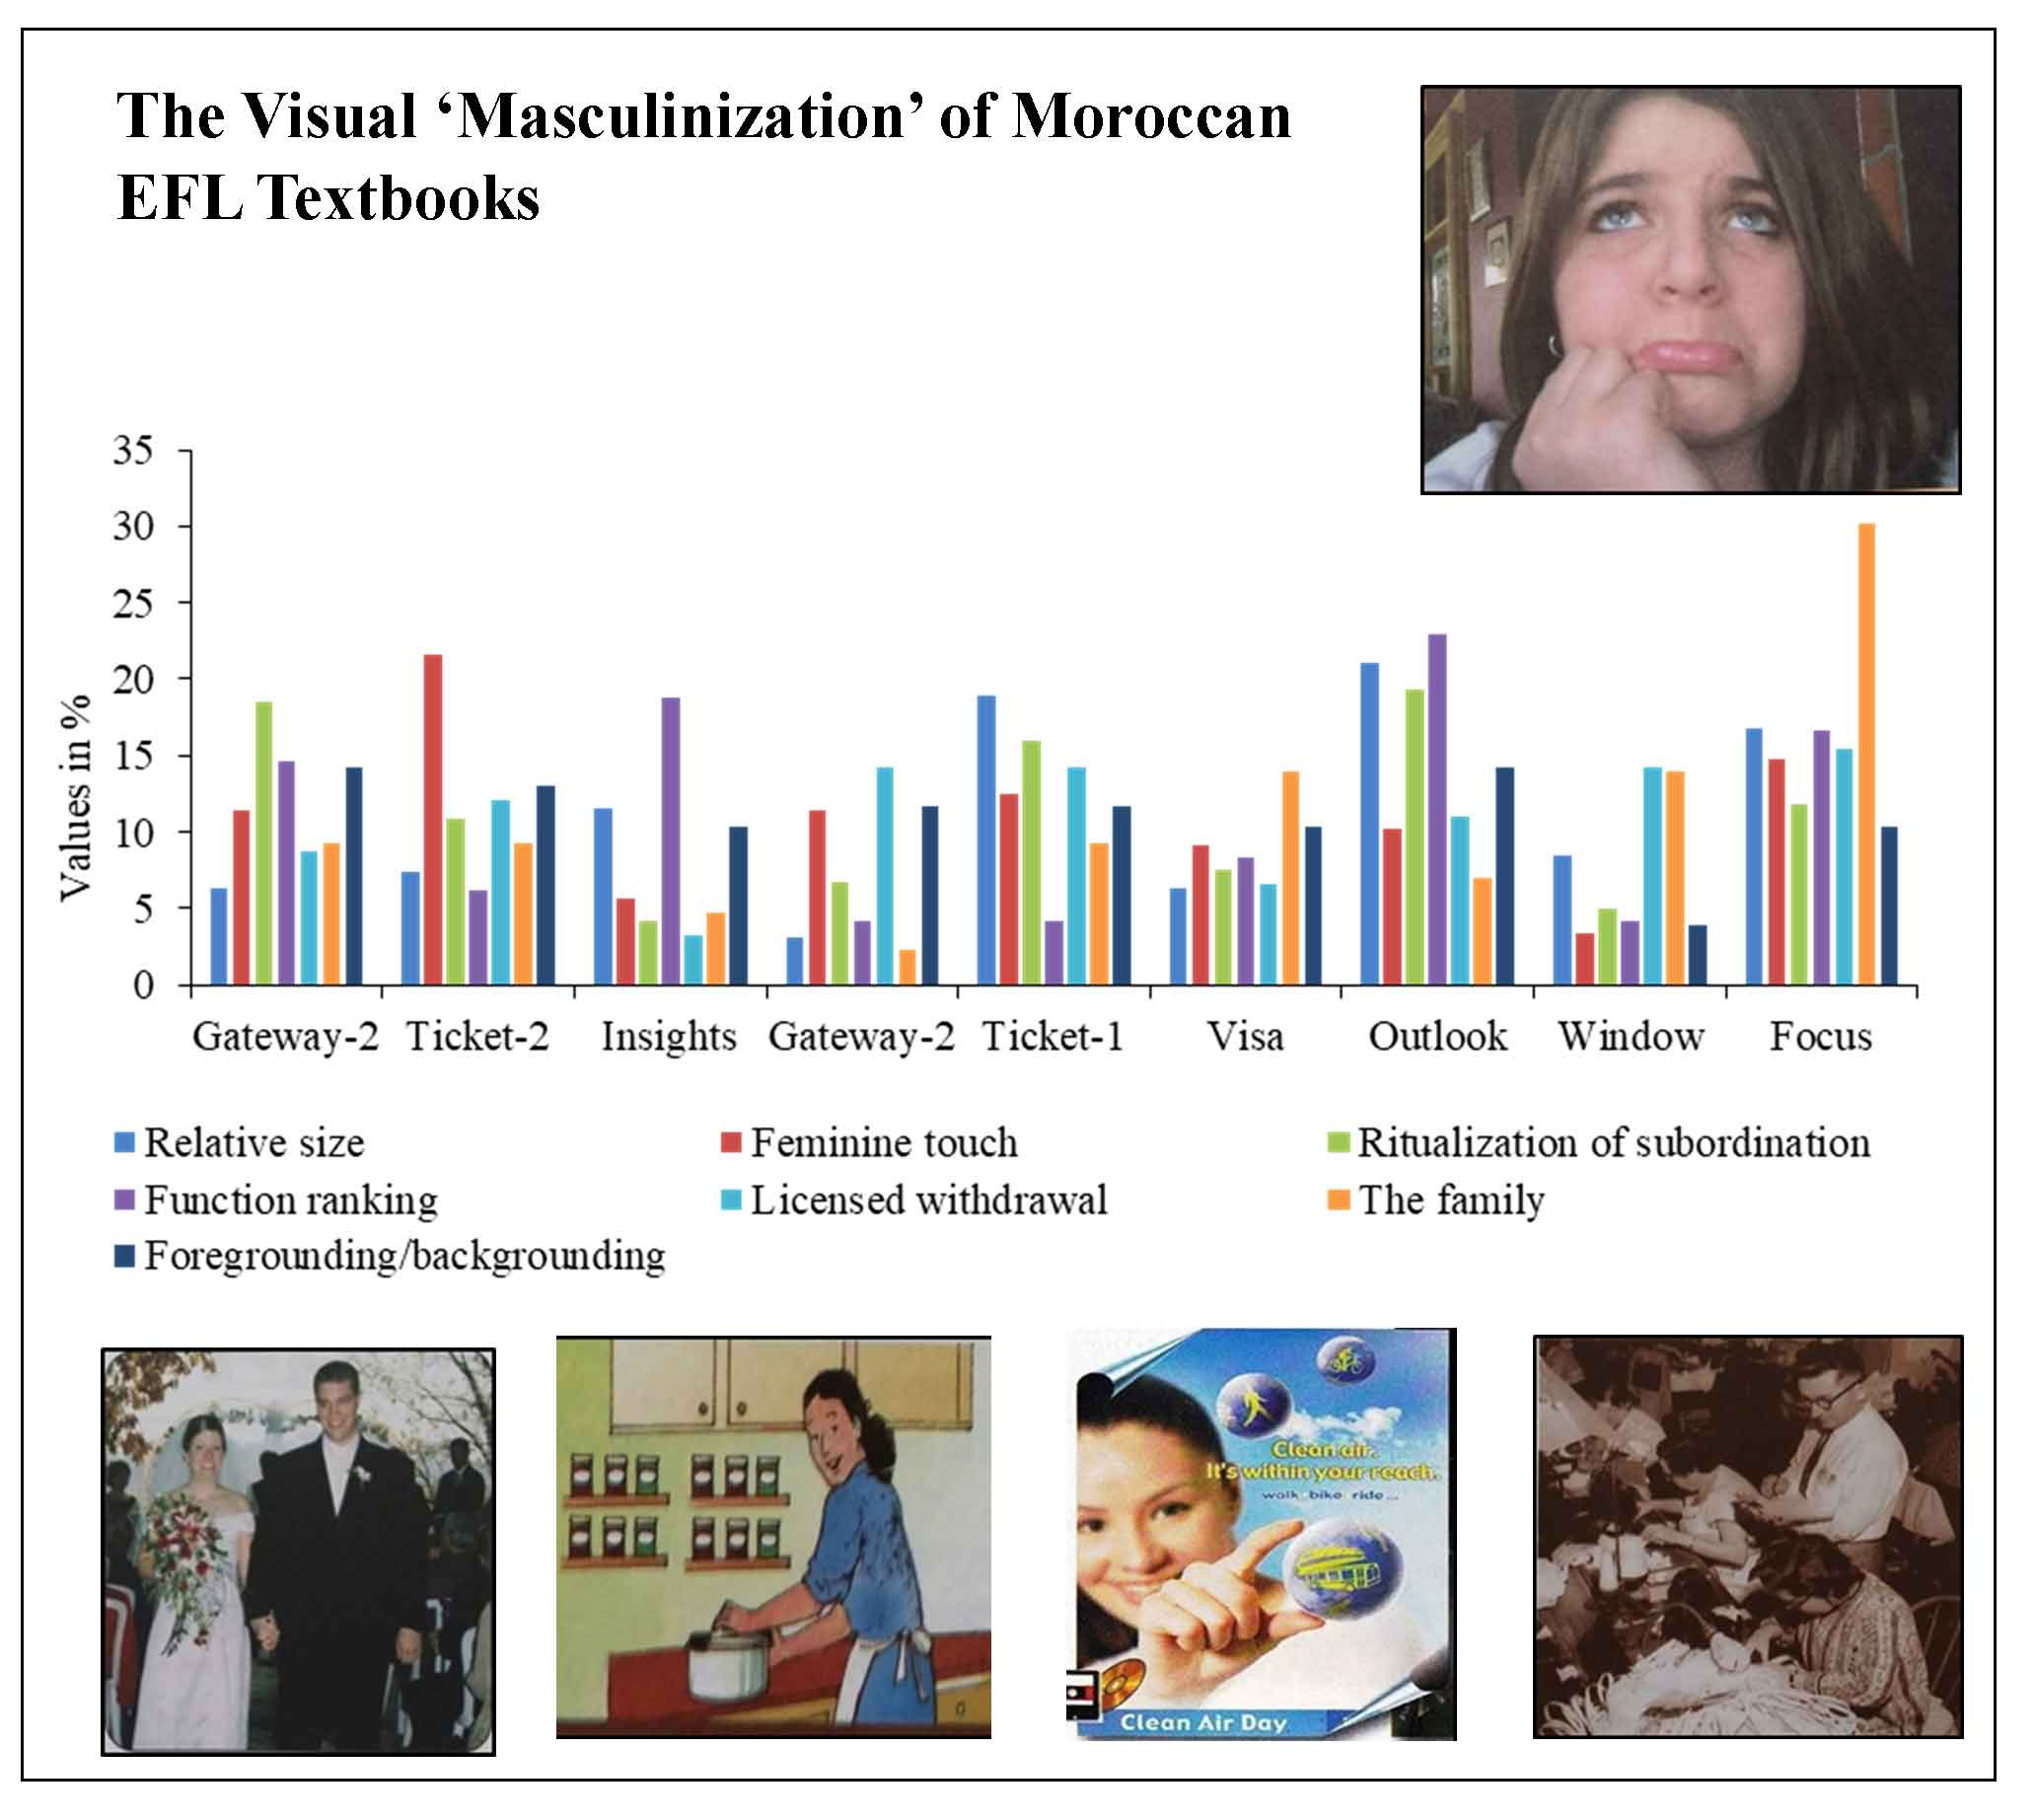 The Visual 'Masculinization' of Moroccan EFL Textbooks: A Social Semiotic Analysis